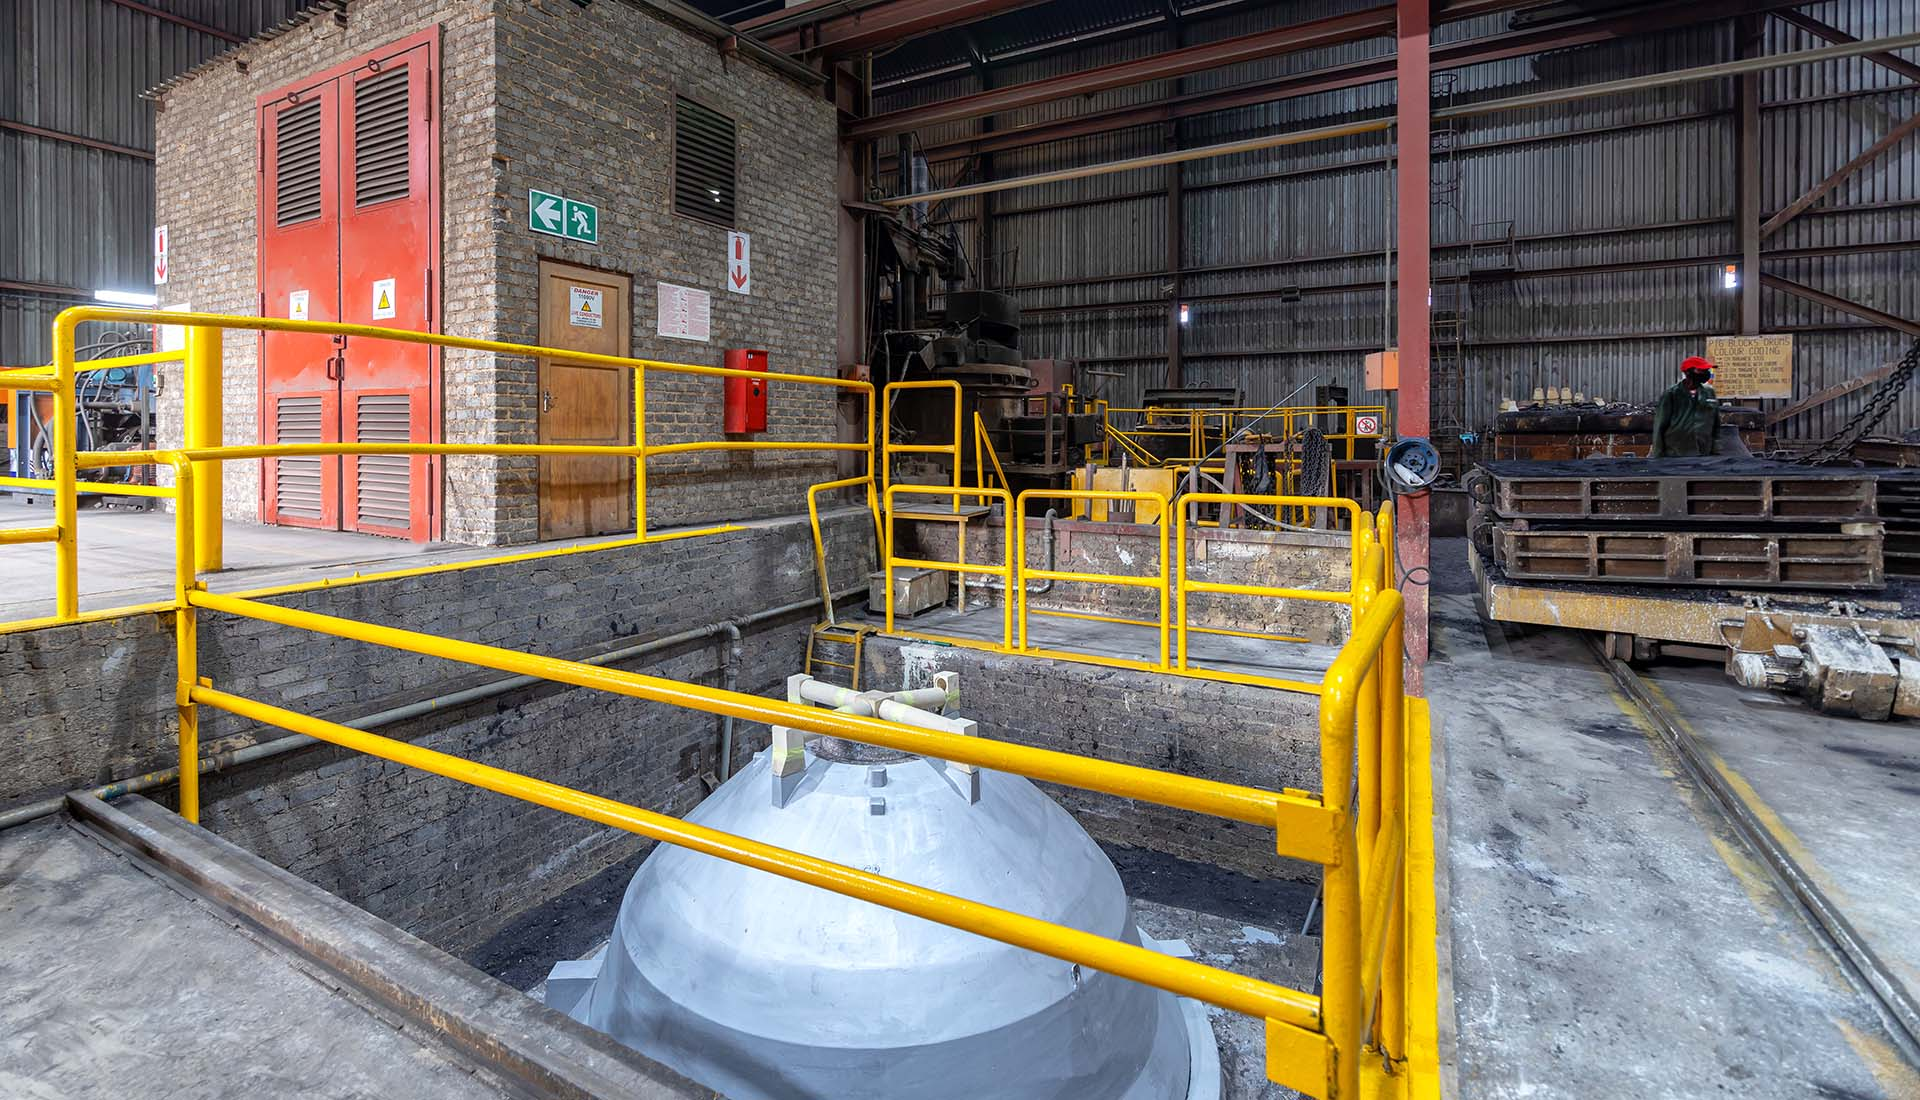 Industrial Photography, Foundry warehouse.